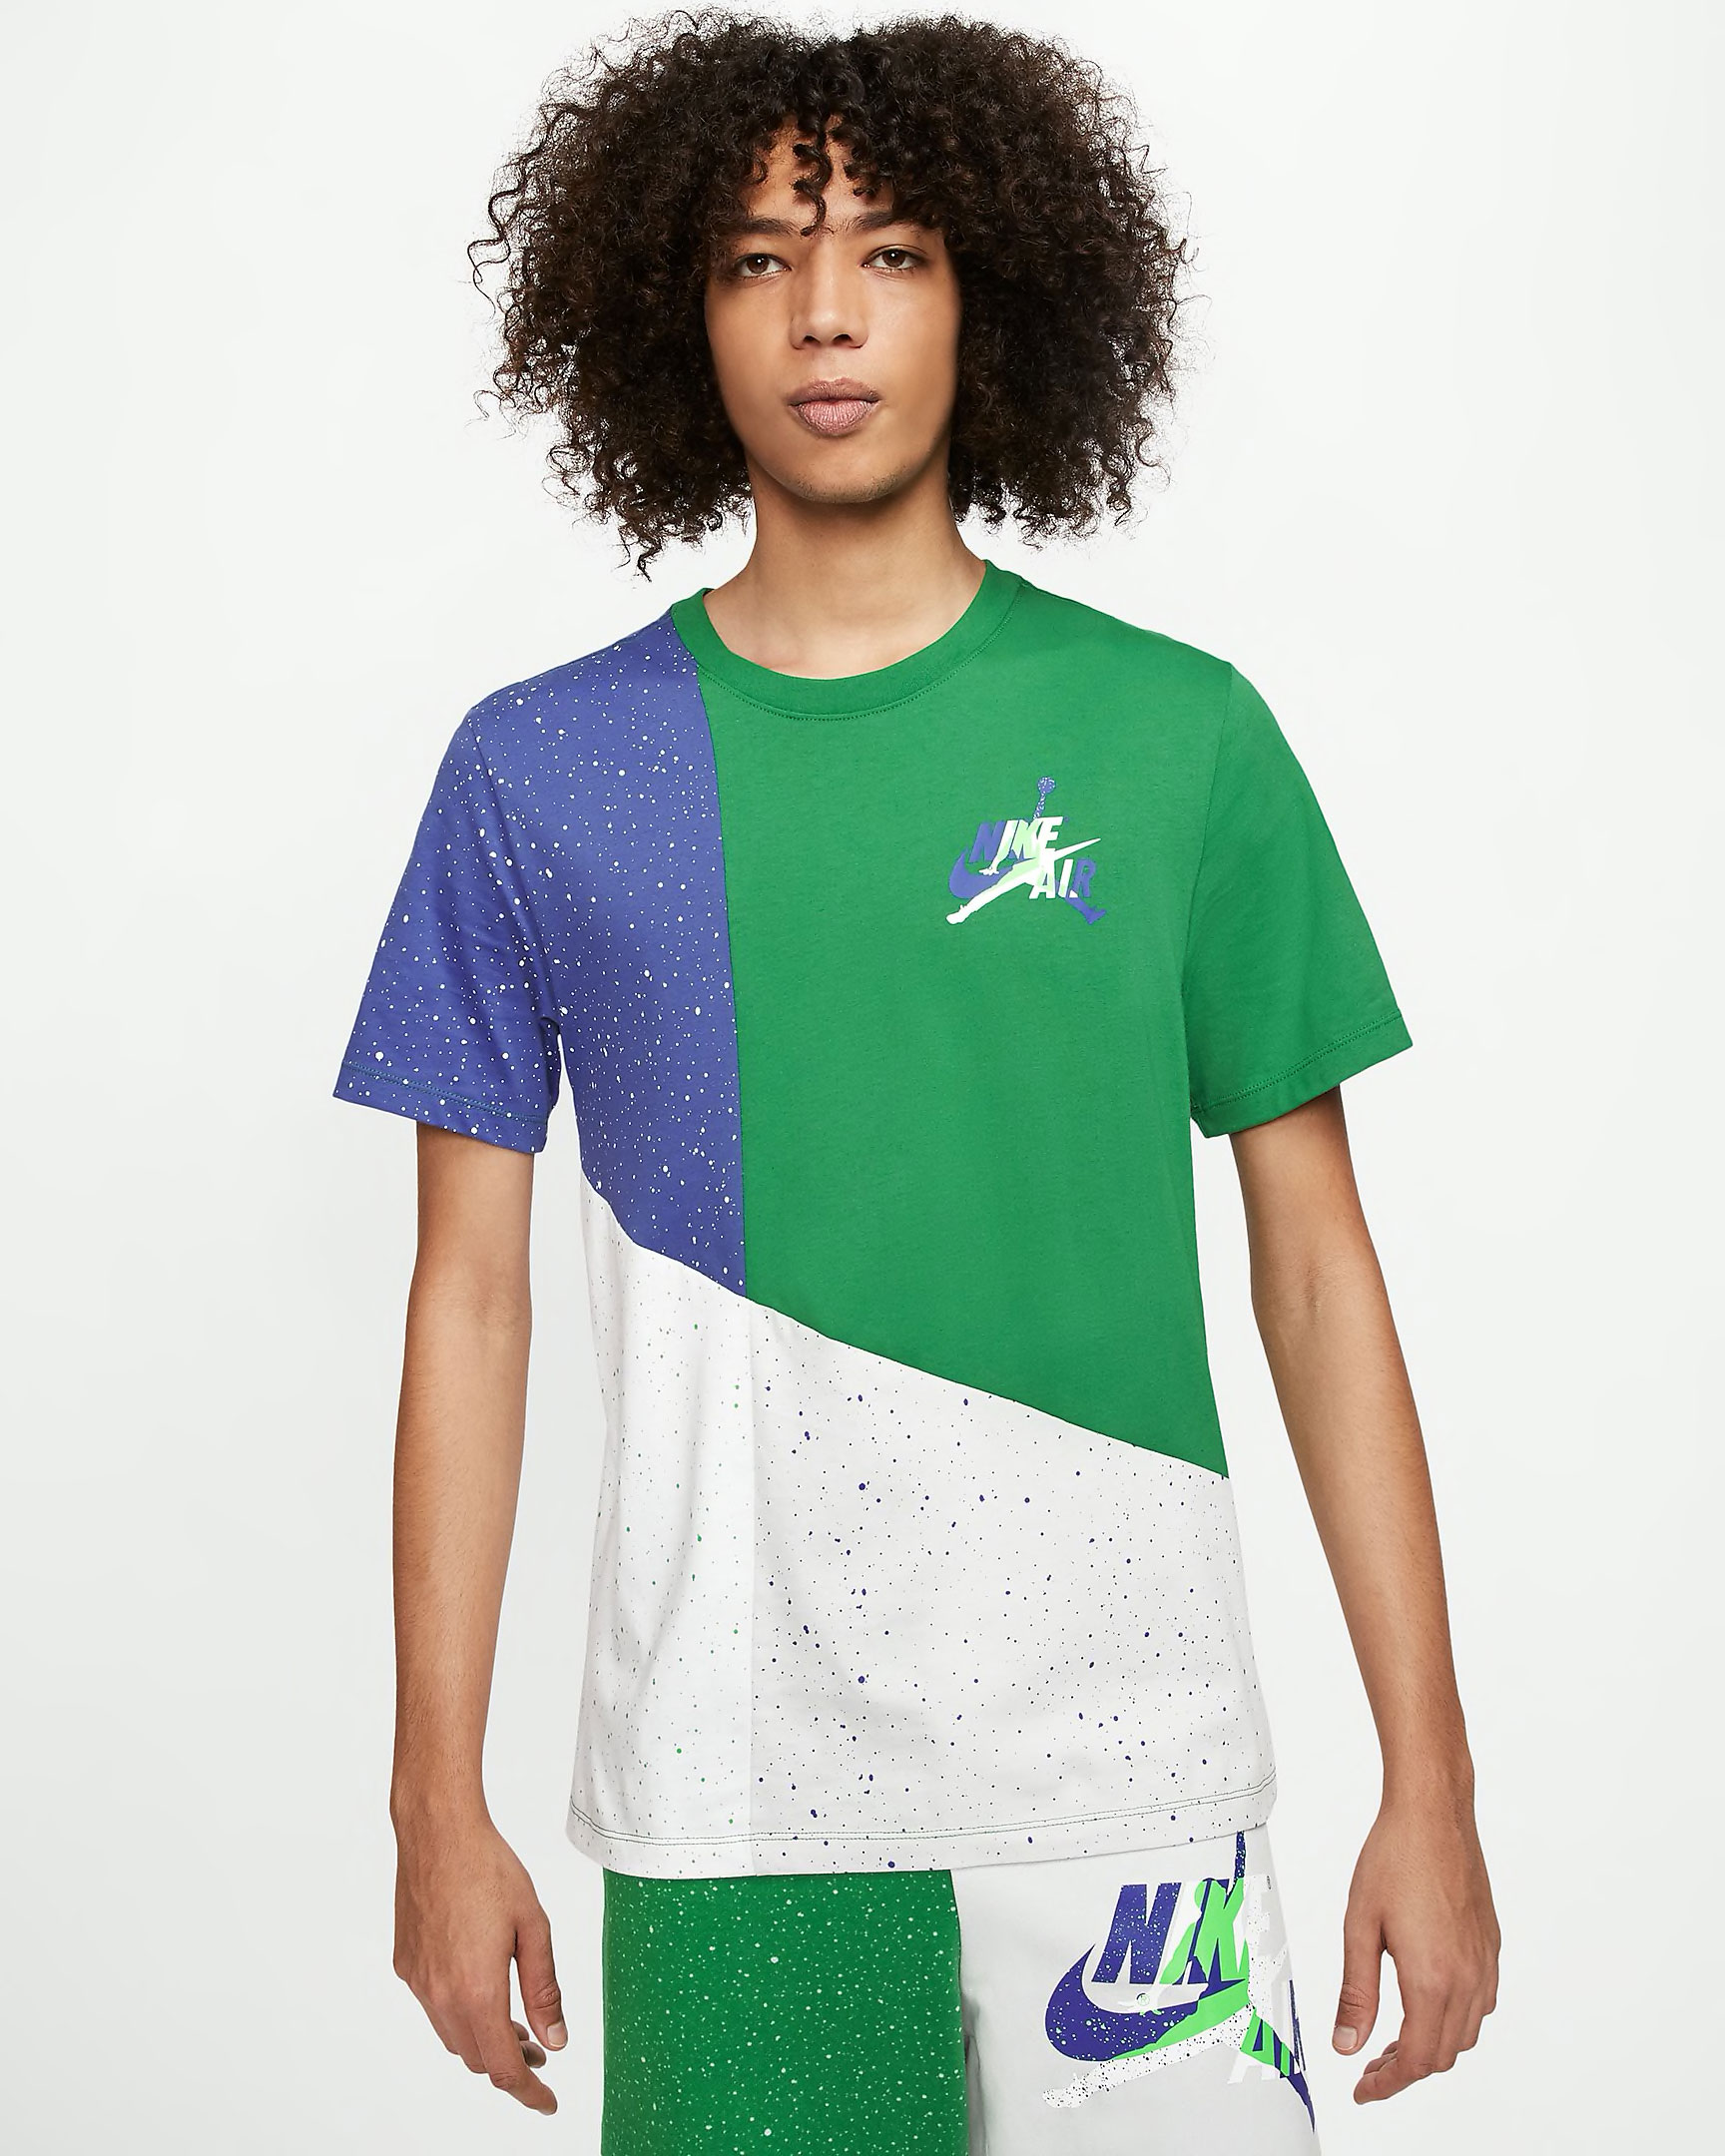 air-jordan-1-mid-hulk-shirt-1